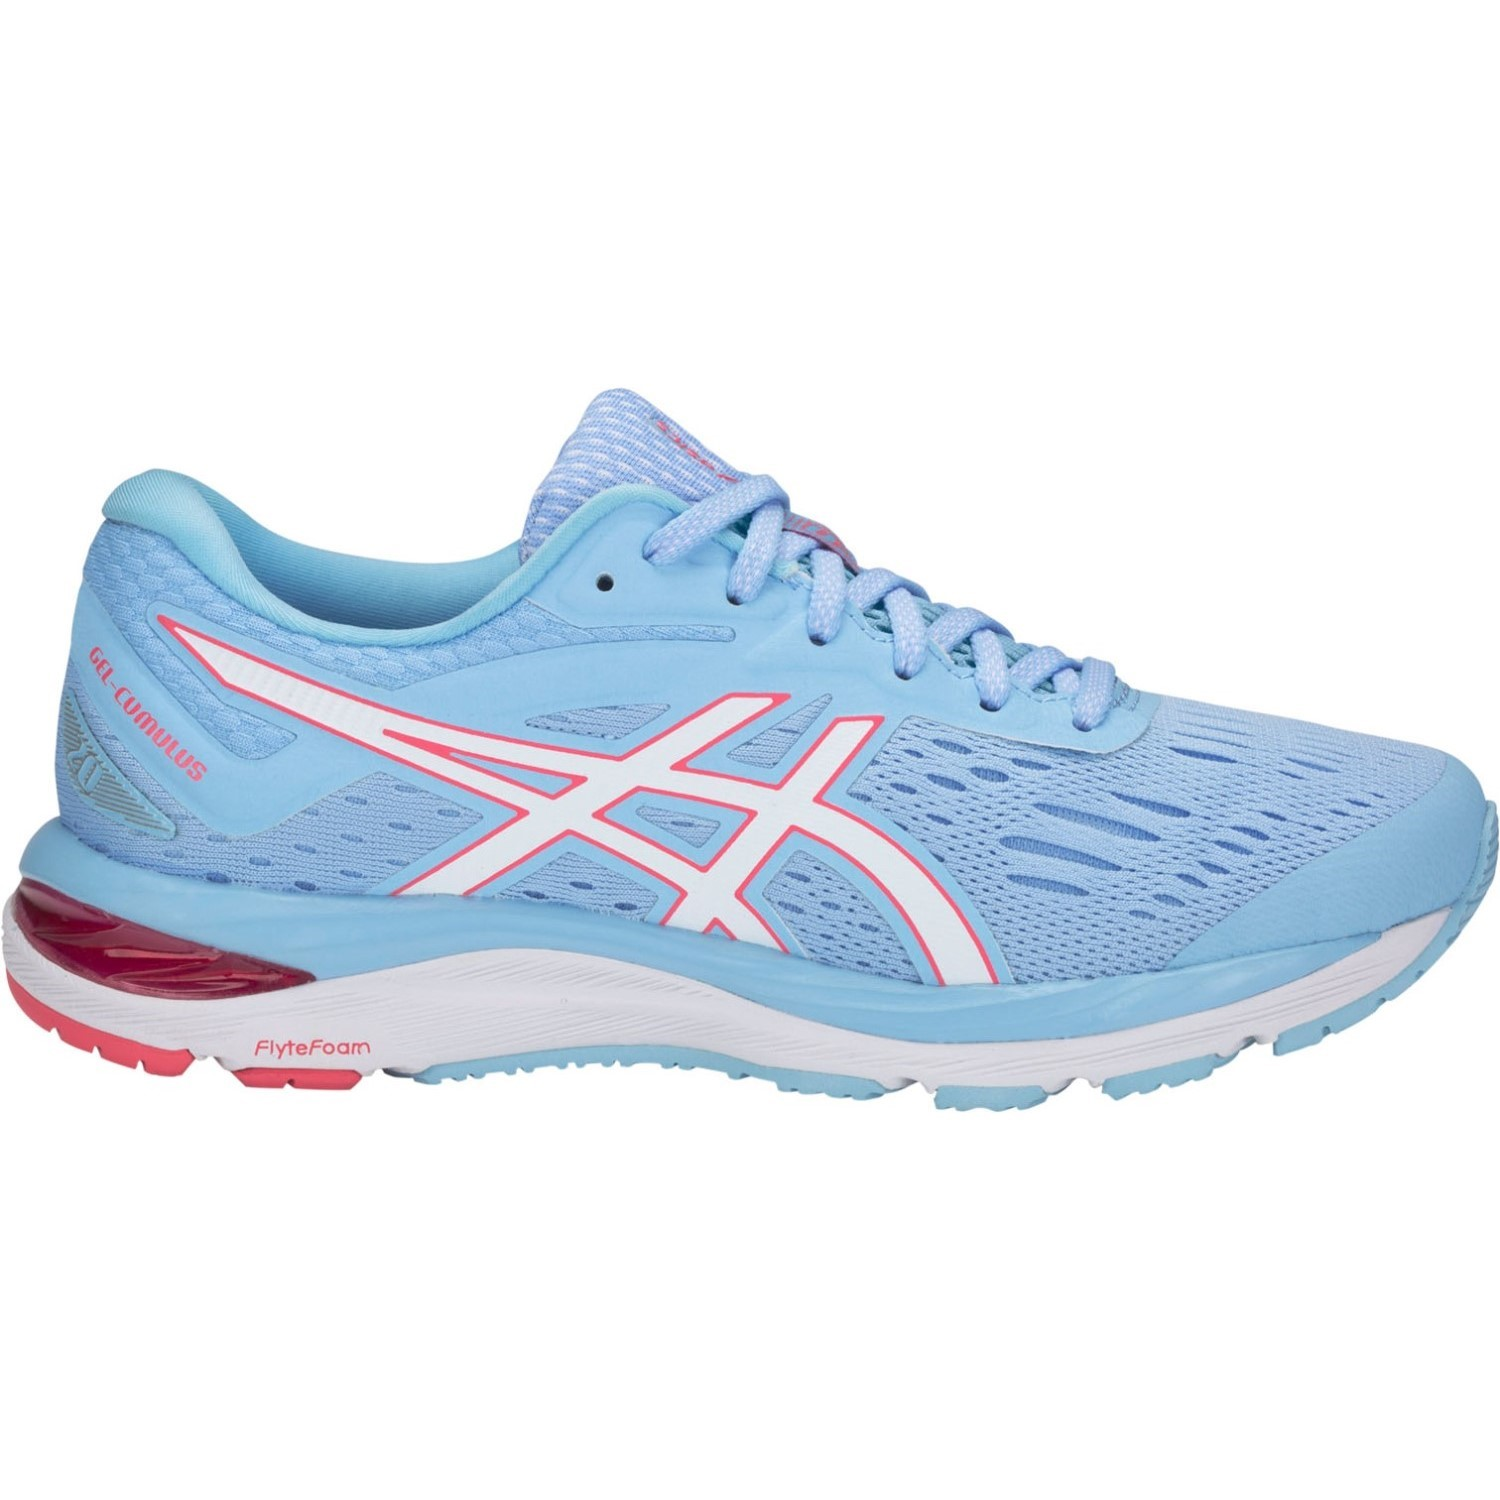 f5acfaa4b722 Asics Gel Cumulus 20 - Womens Running Shoes - Skylight/White ...